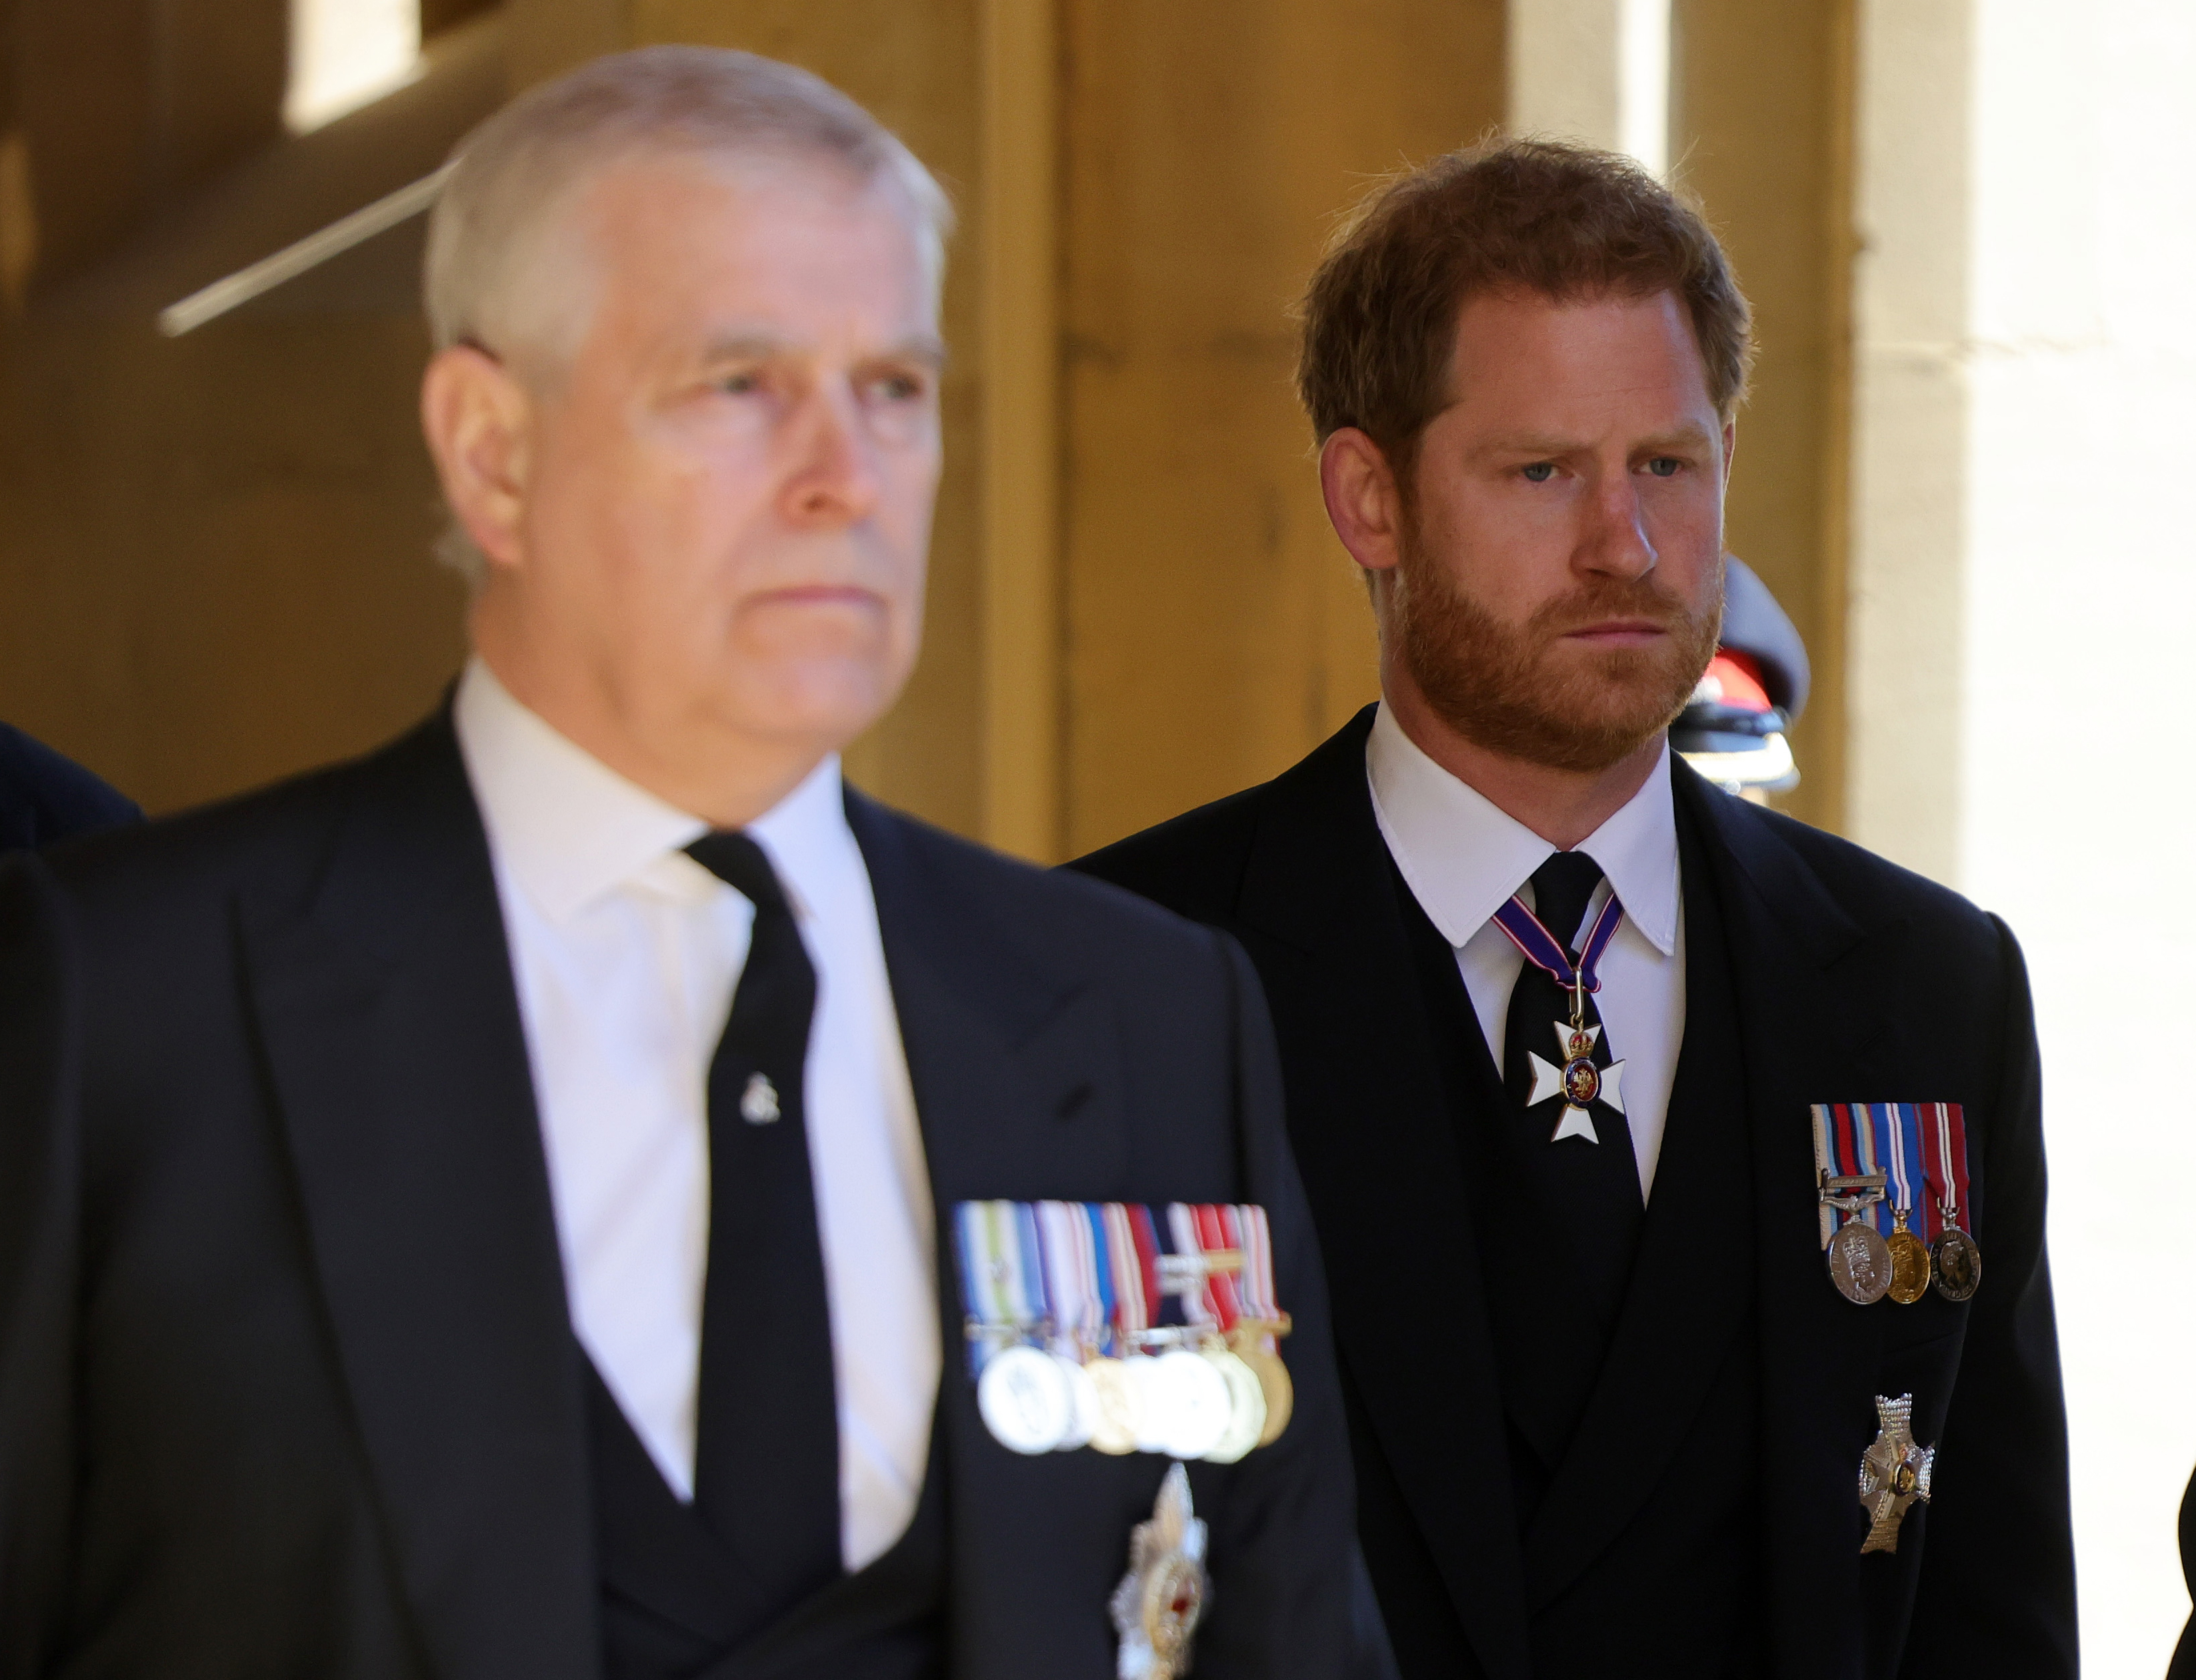 Prince Andrew and Prince Harry